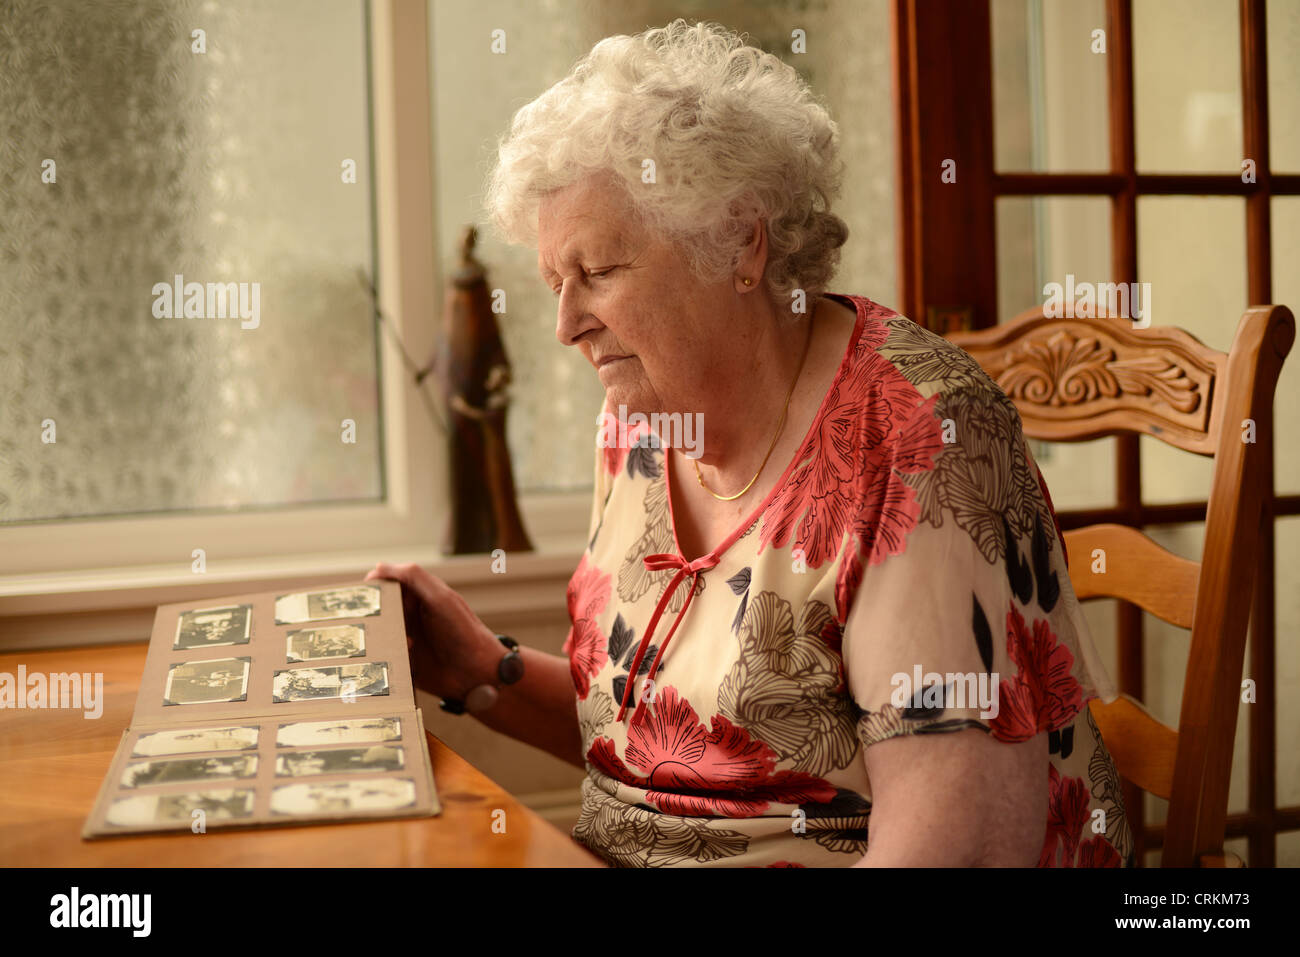 An elderly lady looking at photographs in an album sat at table - Stock Image